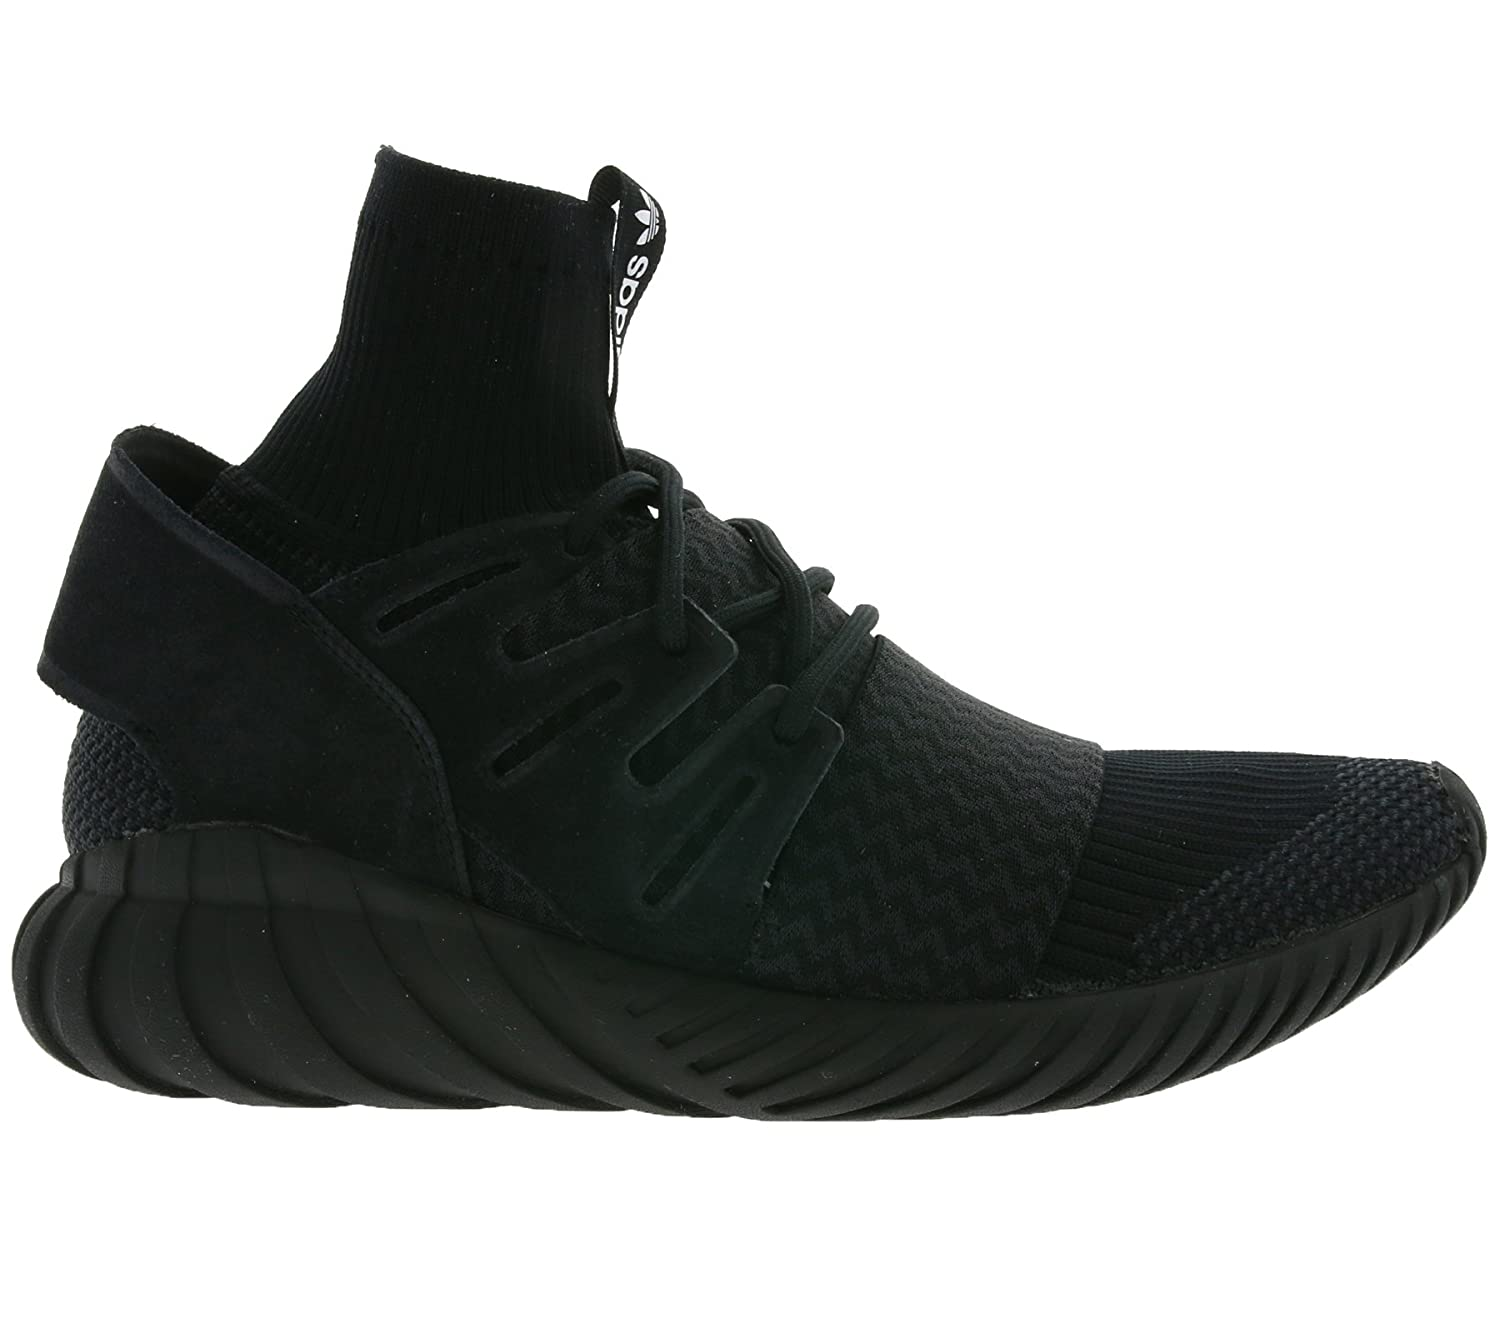 classic fit 37961 491c6 Adidas Tubular Doom PK Black Sneakers with collar and elastic band